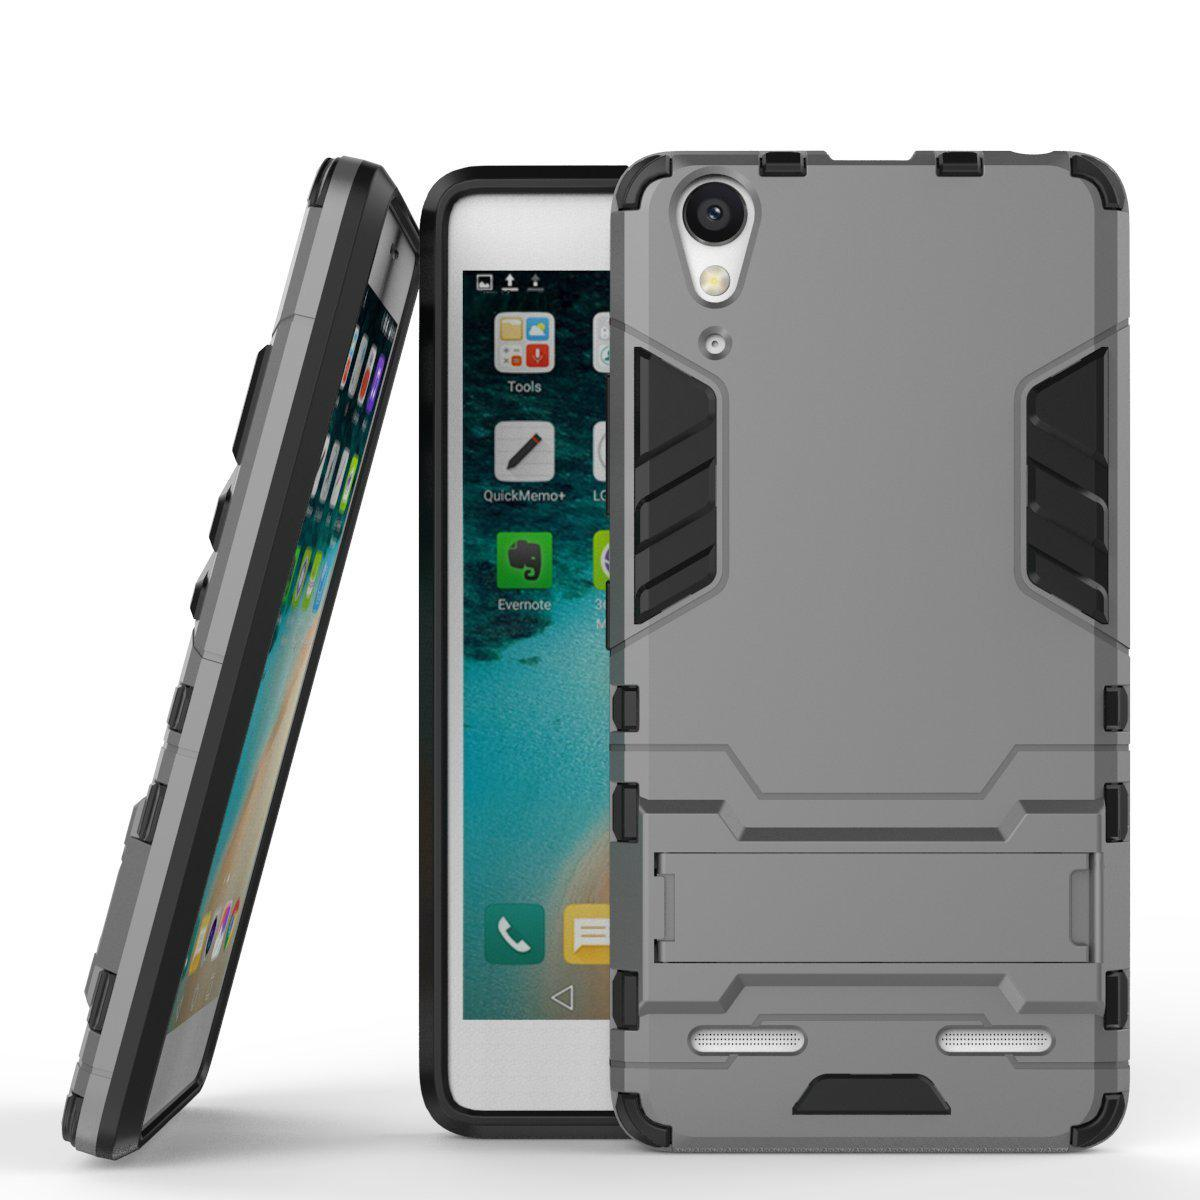 Buy Lenovo A6000 Phone Case Hard Back Cover Slim Armor Dual Layer Capa Shockproof Fundas Soft TPU Bumper Kickstand